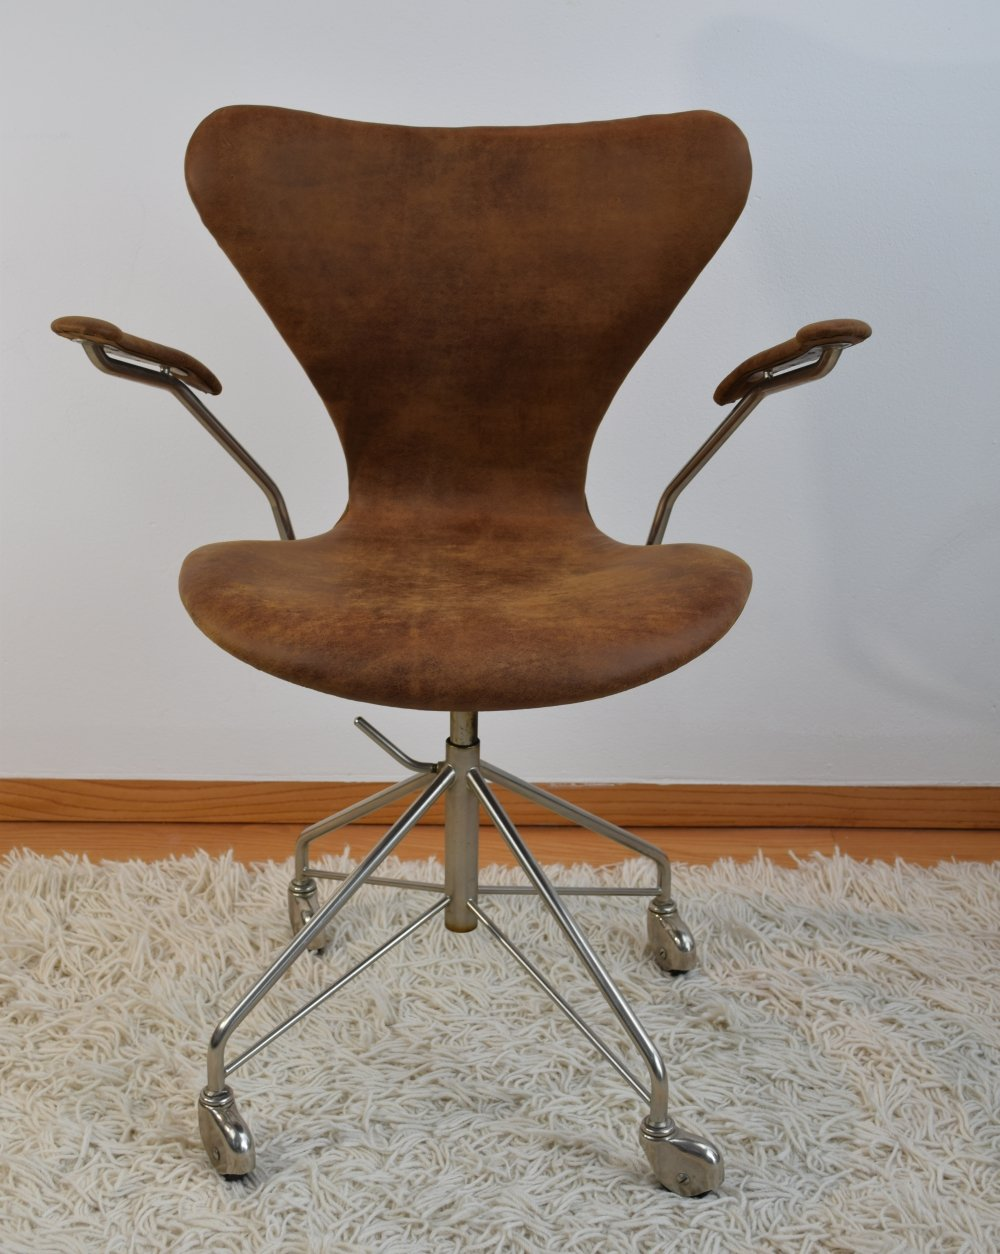 Arne Jacobsen FH 3217 Adjustable leather Swivel Desk chair, 1950s